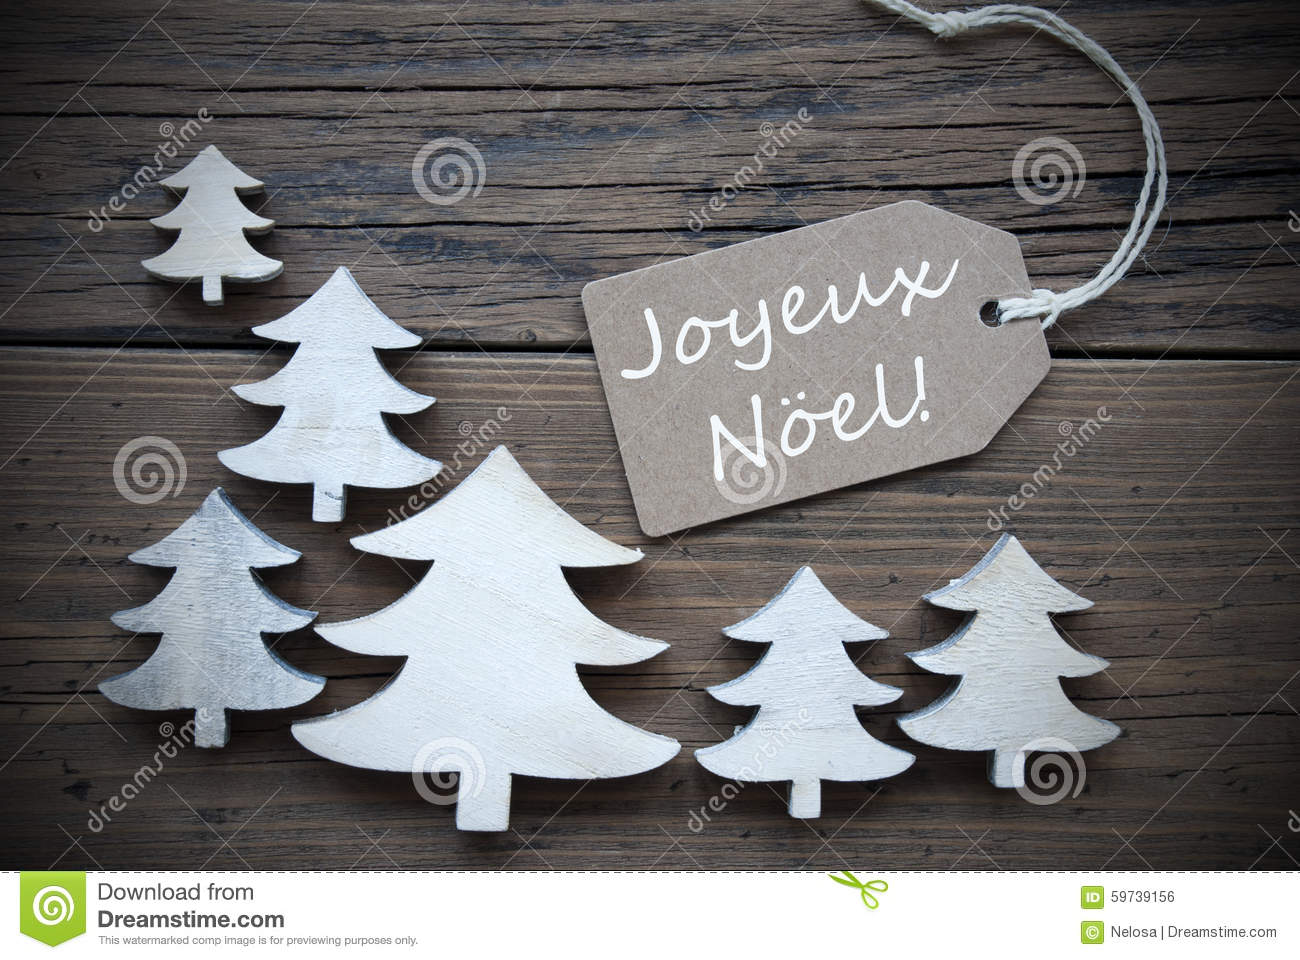 label and trees joyeux noel mean merry christmas stock. Black Bedroom Furniture Sets. Home Design Ideas